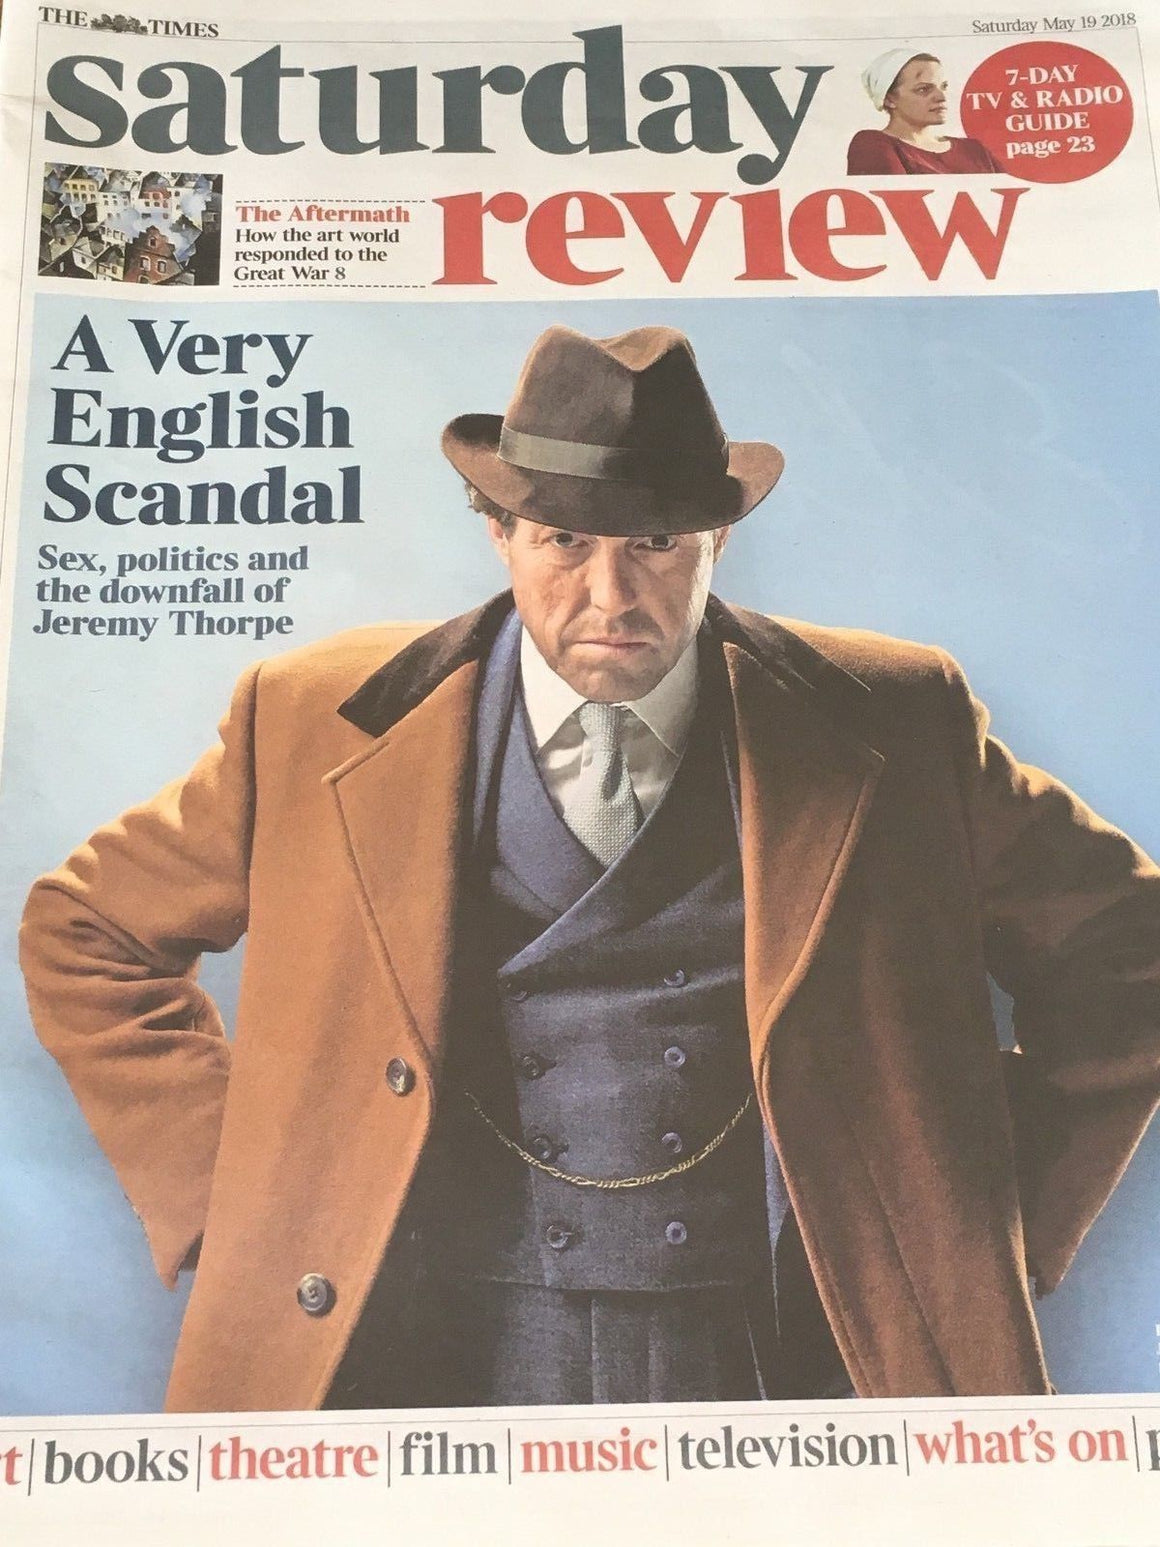 UK Times Review May 2018: HUGH GRANT A Very English Scandal BEN WHISHAW